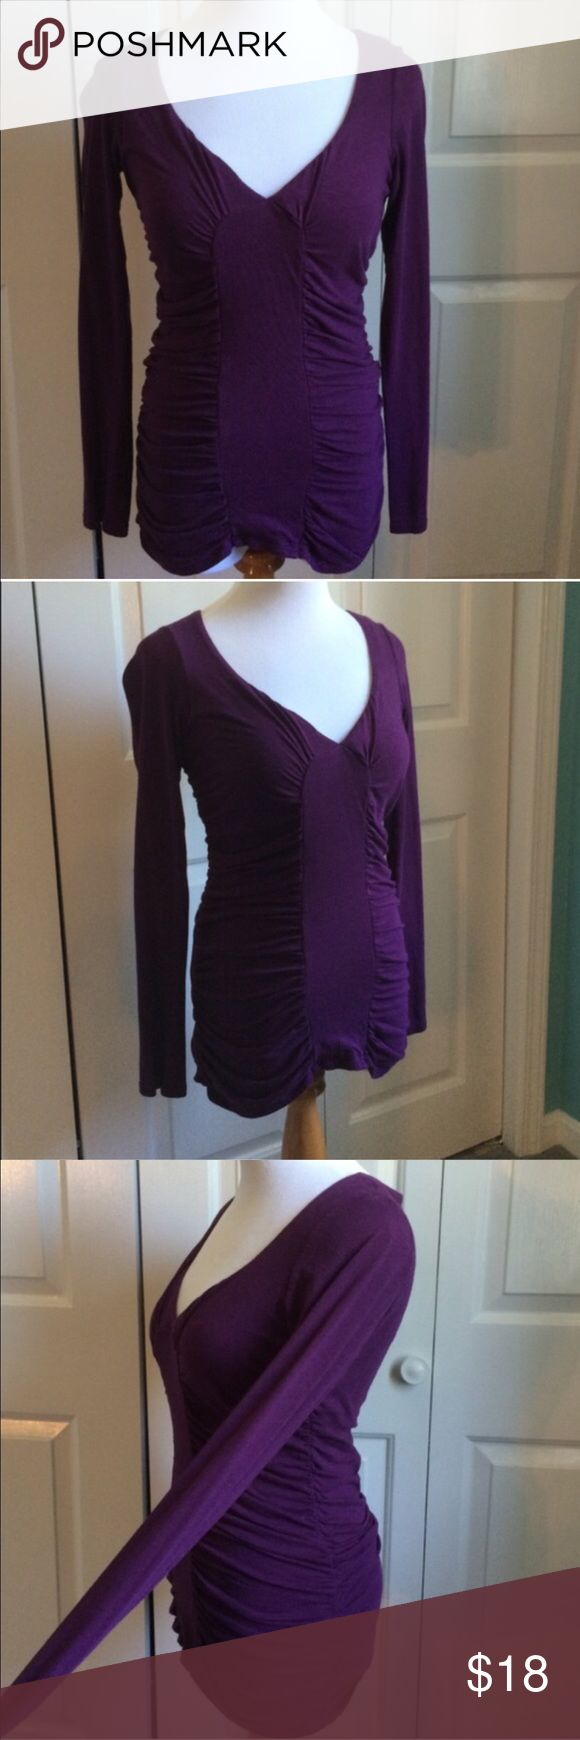 Plum Ruched Top Dark purple long sleeve top with ruching down sides and front. Excellent for hiding a belly/pouch. Built in bra underneath. Excellent condition. Victoria's Secret Tops Tees - Long Sleeve